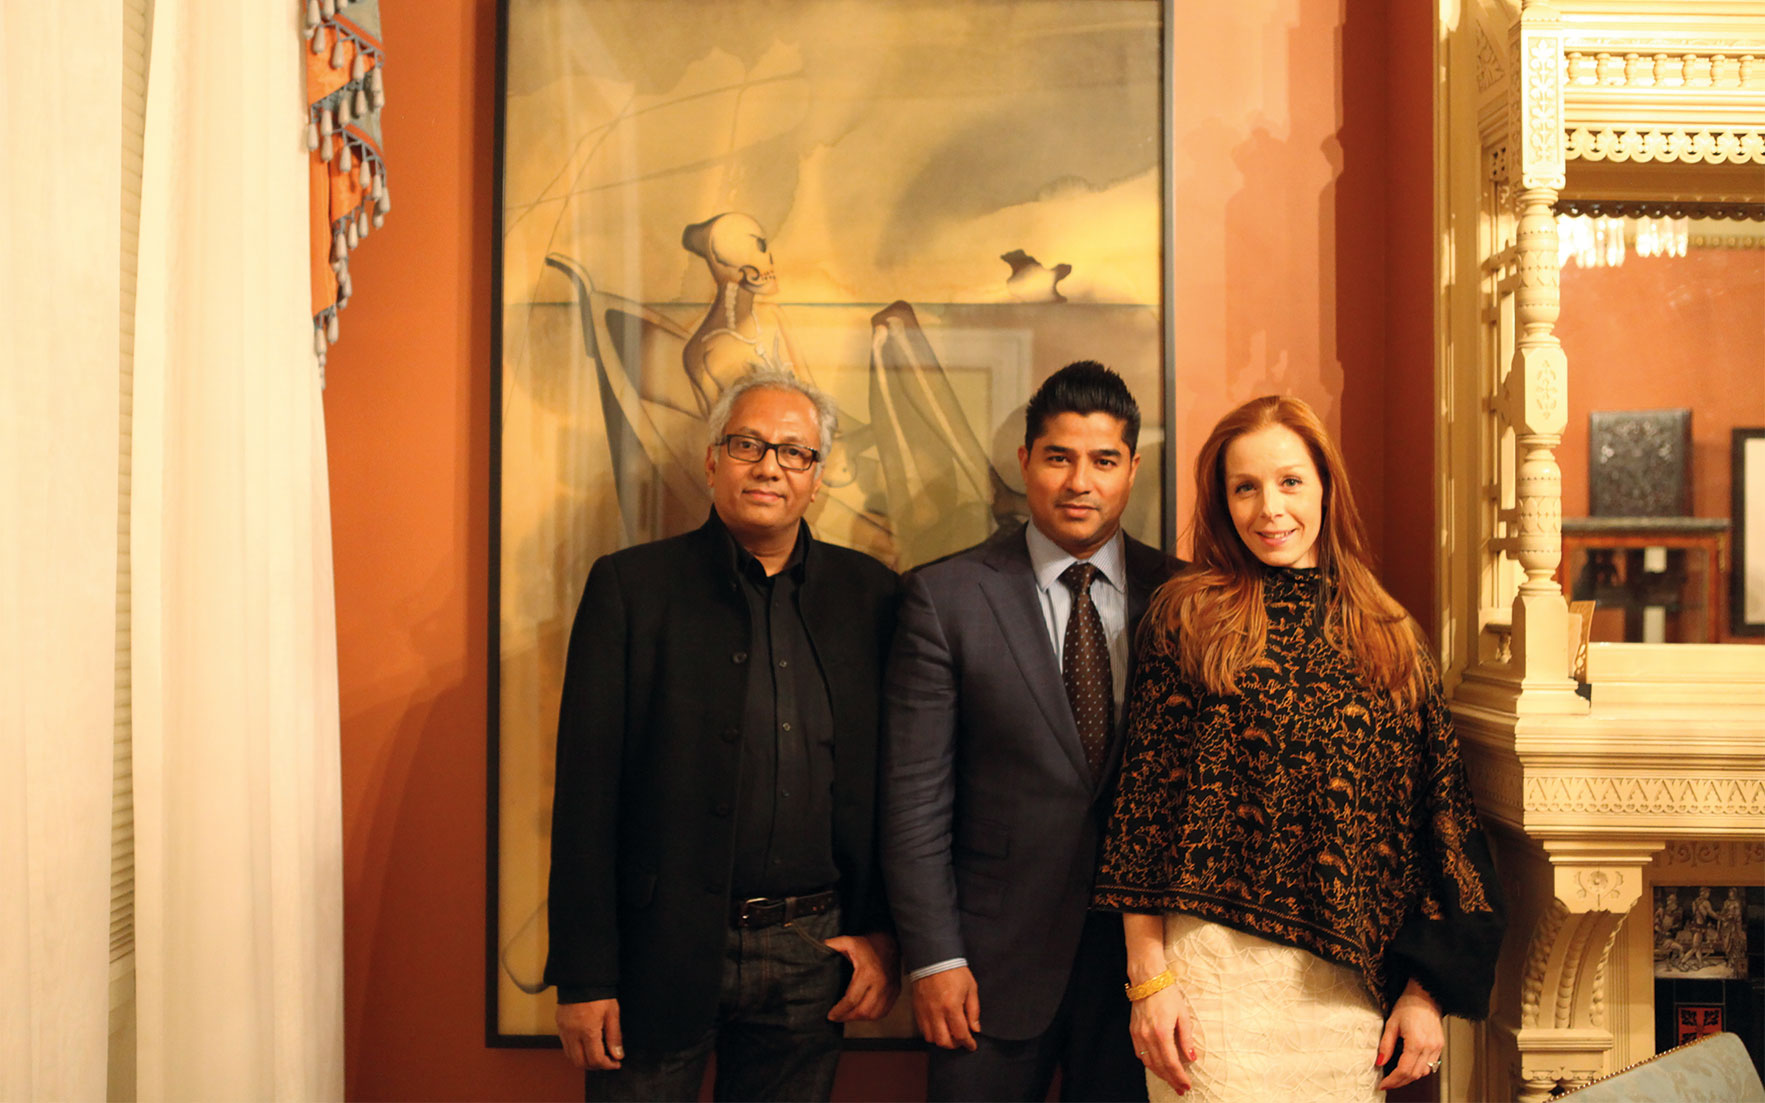 Artist Atul Dodiya, left, with art collectors Pamela and Ajay Raju. Image courtesy of Pamela and Ajay Raju